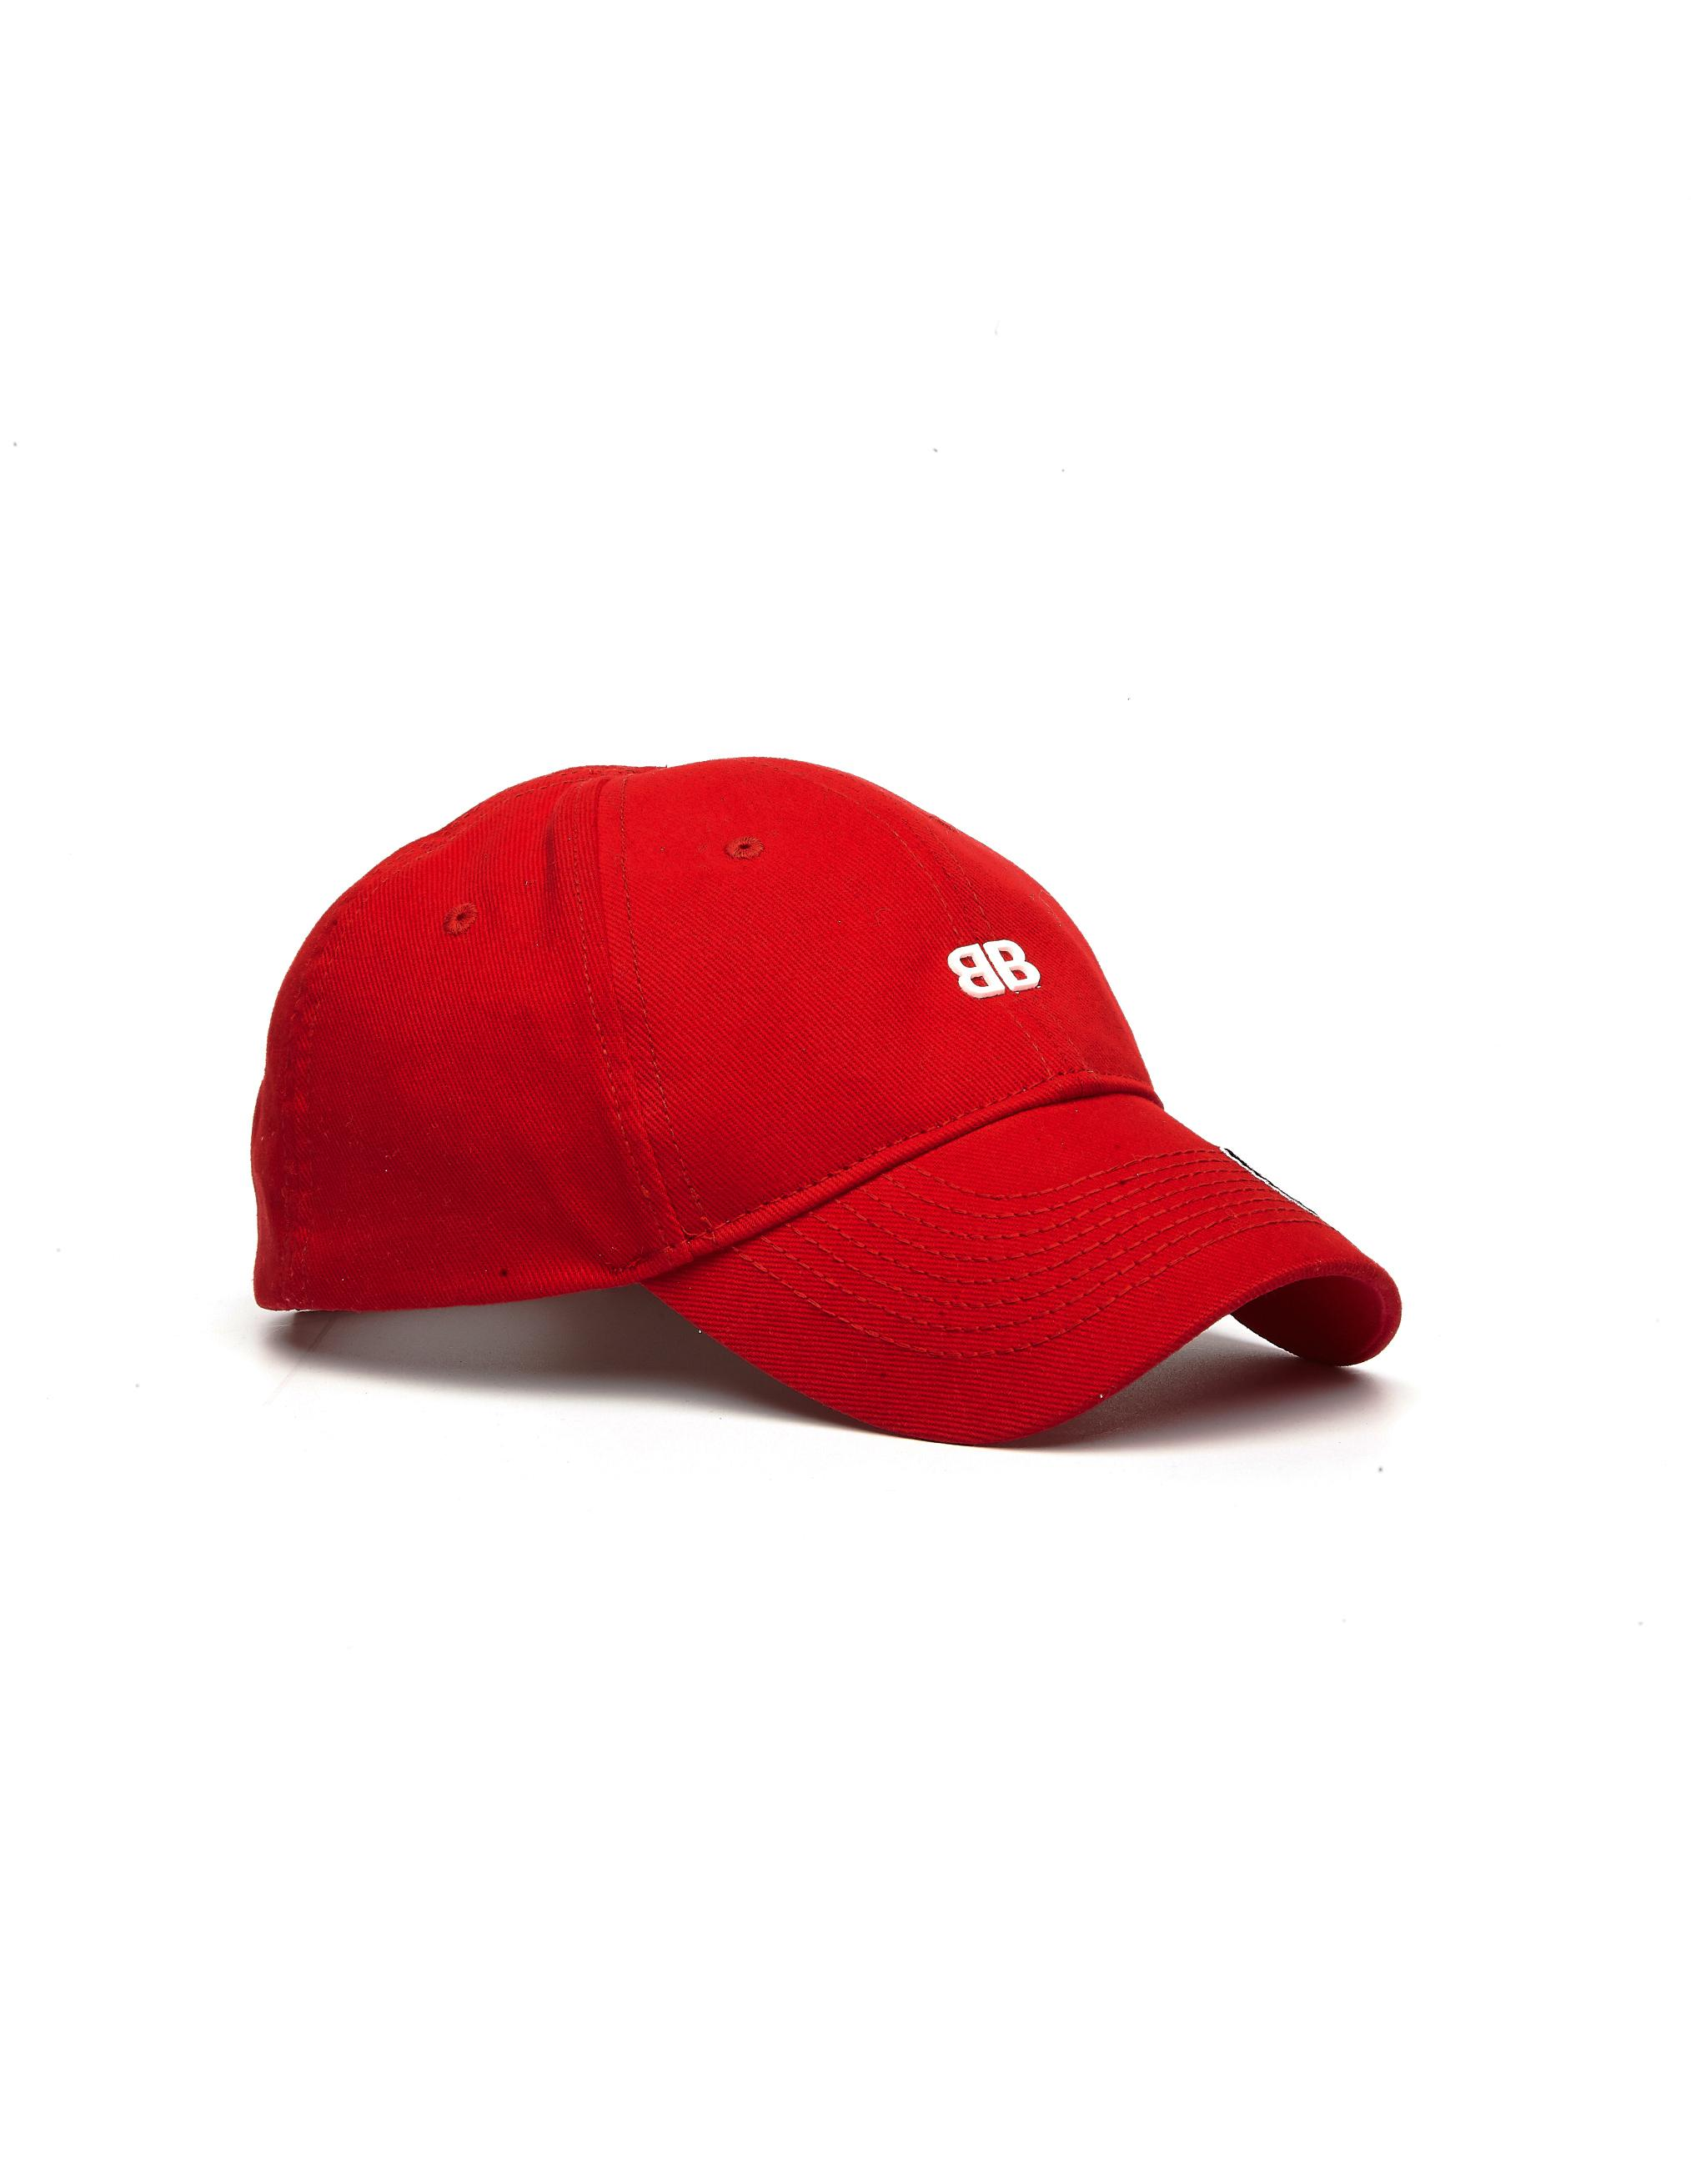 Lyst - Balenciaga Red Europe Cap in Red for Men d8ad2c6b0e3e